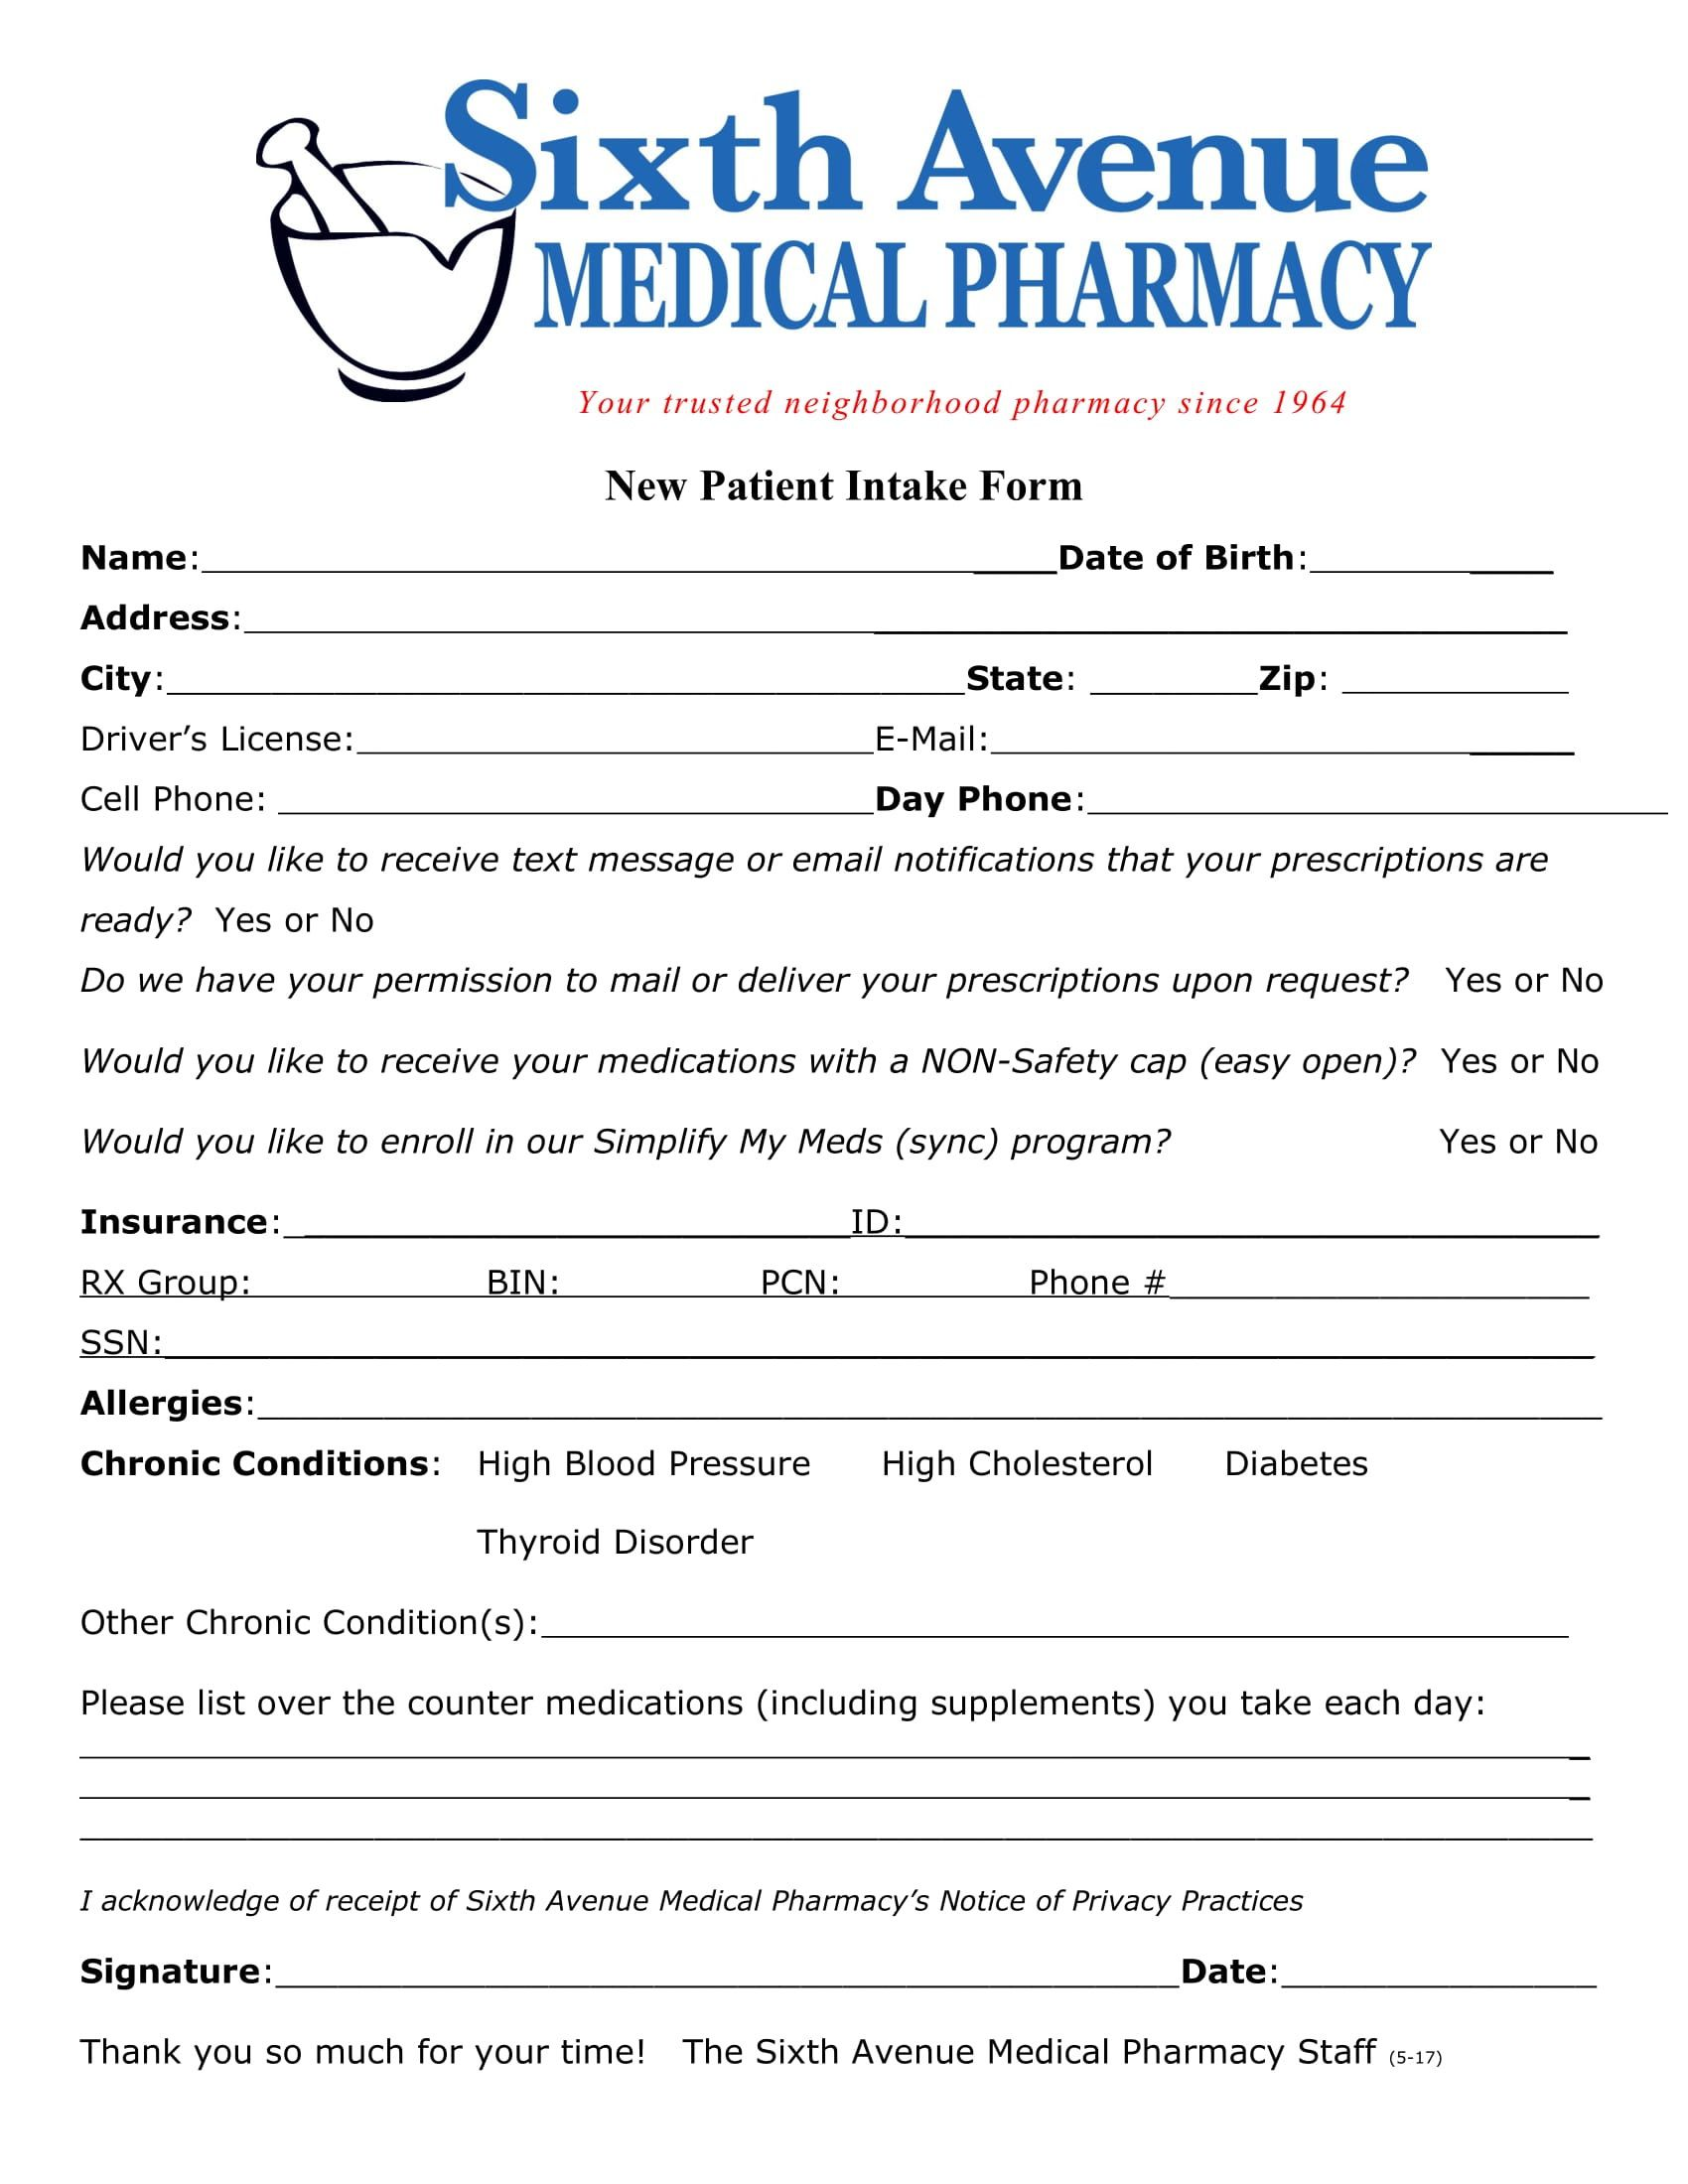 006 Sensational Patient Intake Form Template Photo  Word Client Excel PdfFull